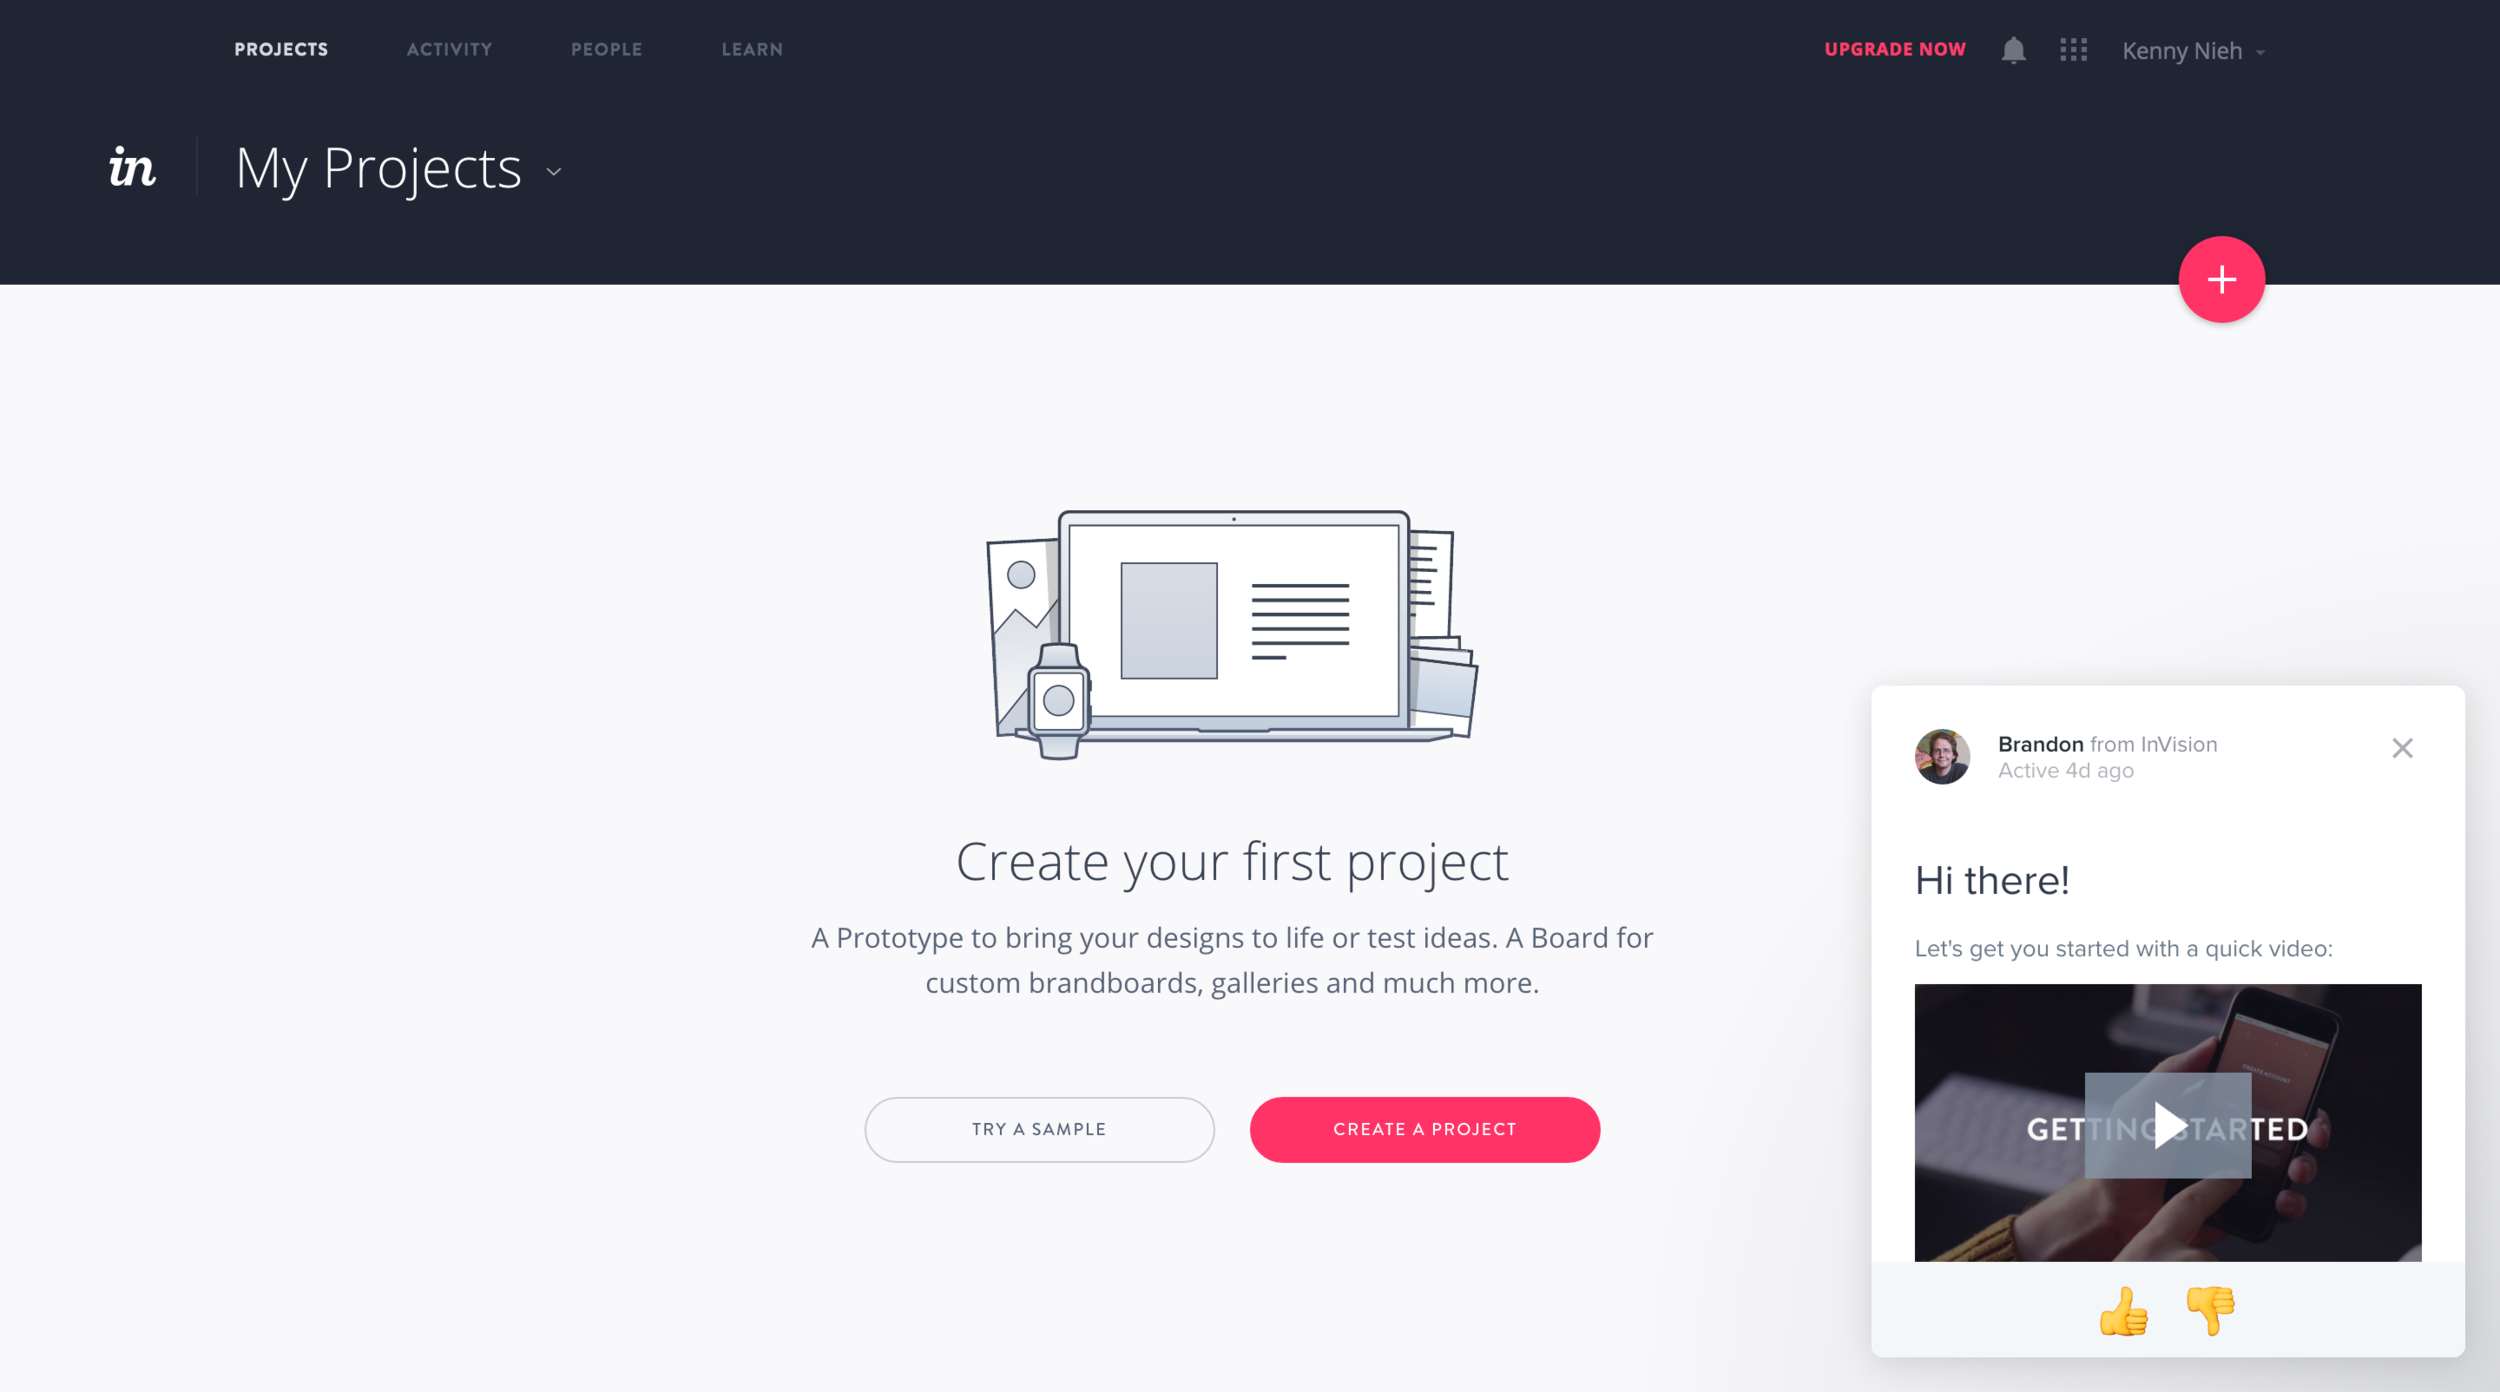 The project page for a first-time user. I imagine Invision's current onboarding is different.